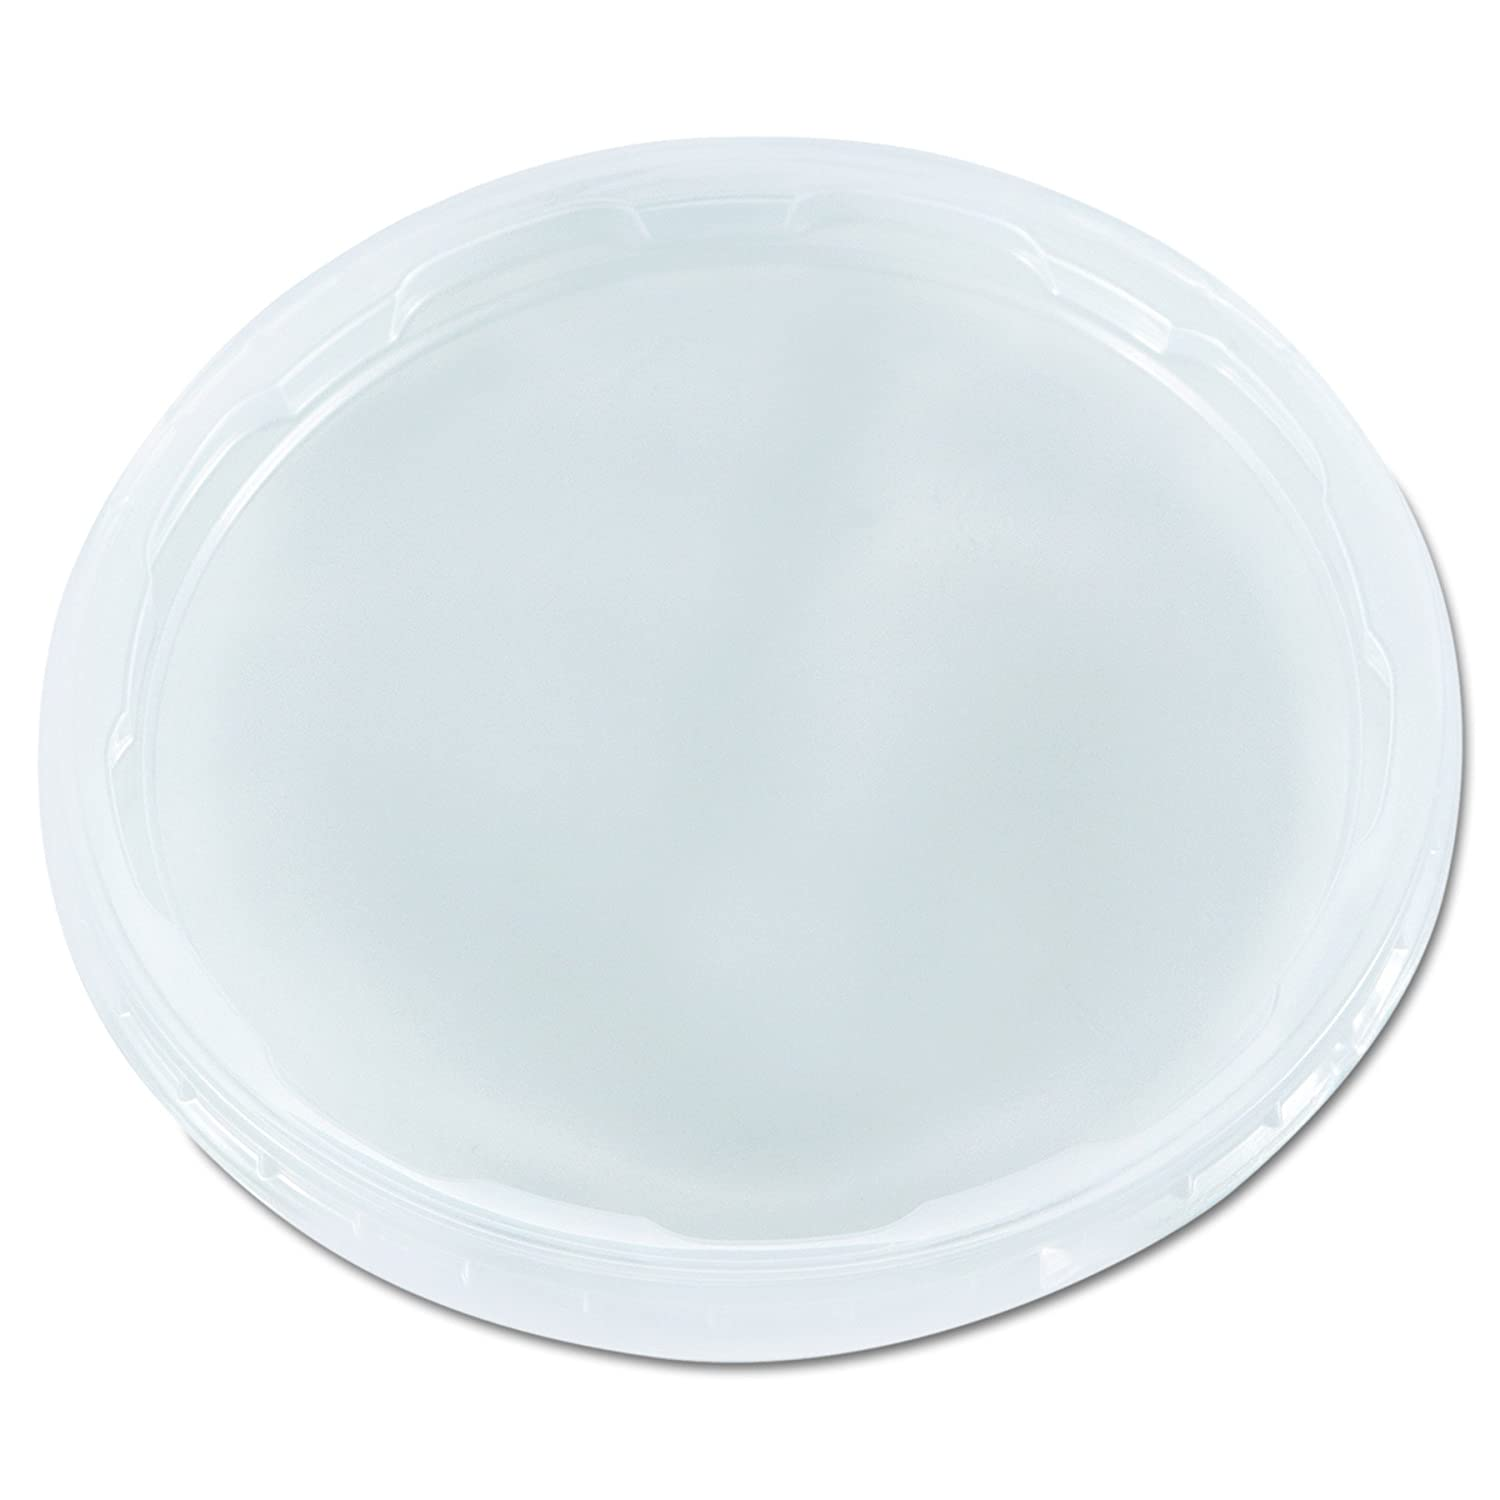 WNA WNA APCTRLID Plug-Style Deli Container Lids, Clear (Pack of 500) by WNA   B0087S2GTU